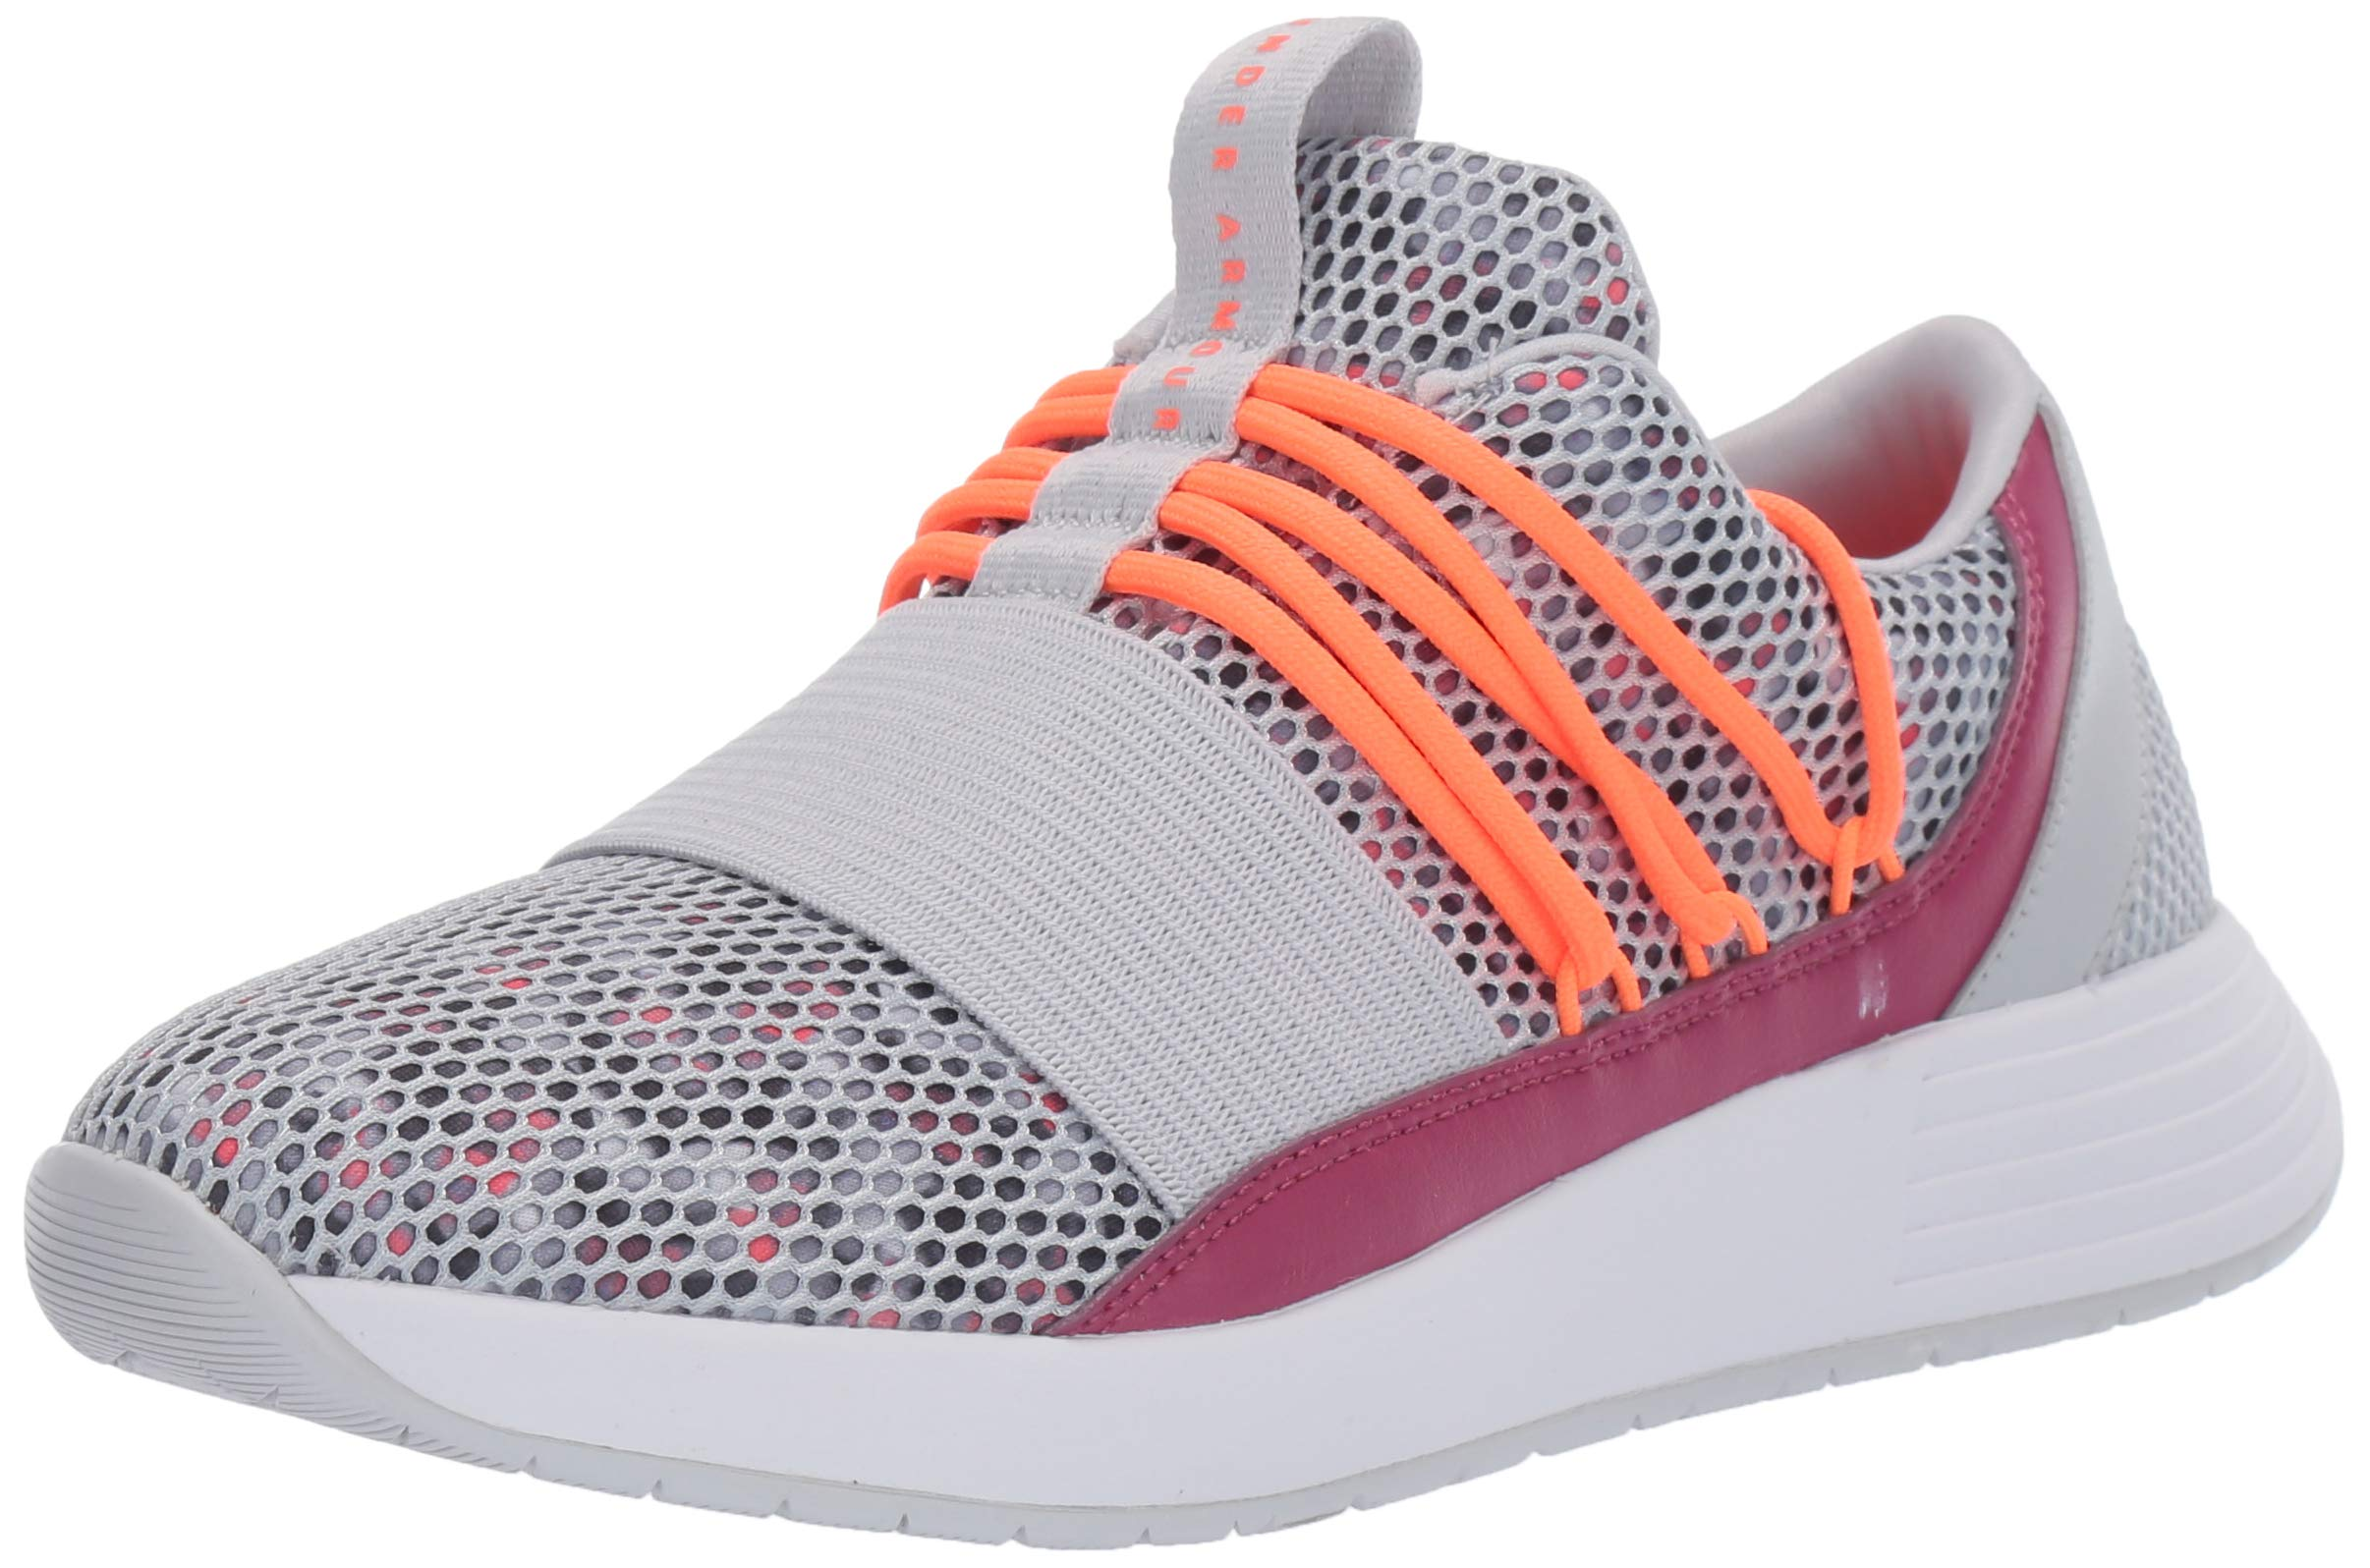 Under Armour Women's Breathe Lace Sneaker, Halo Gray (105)/Pink Quartz, 11 by Under Armour